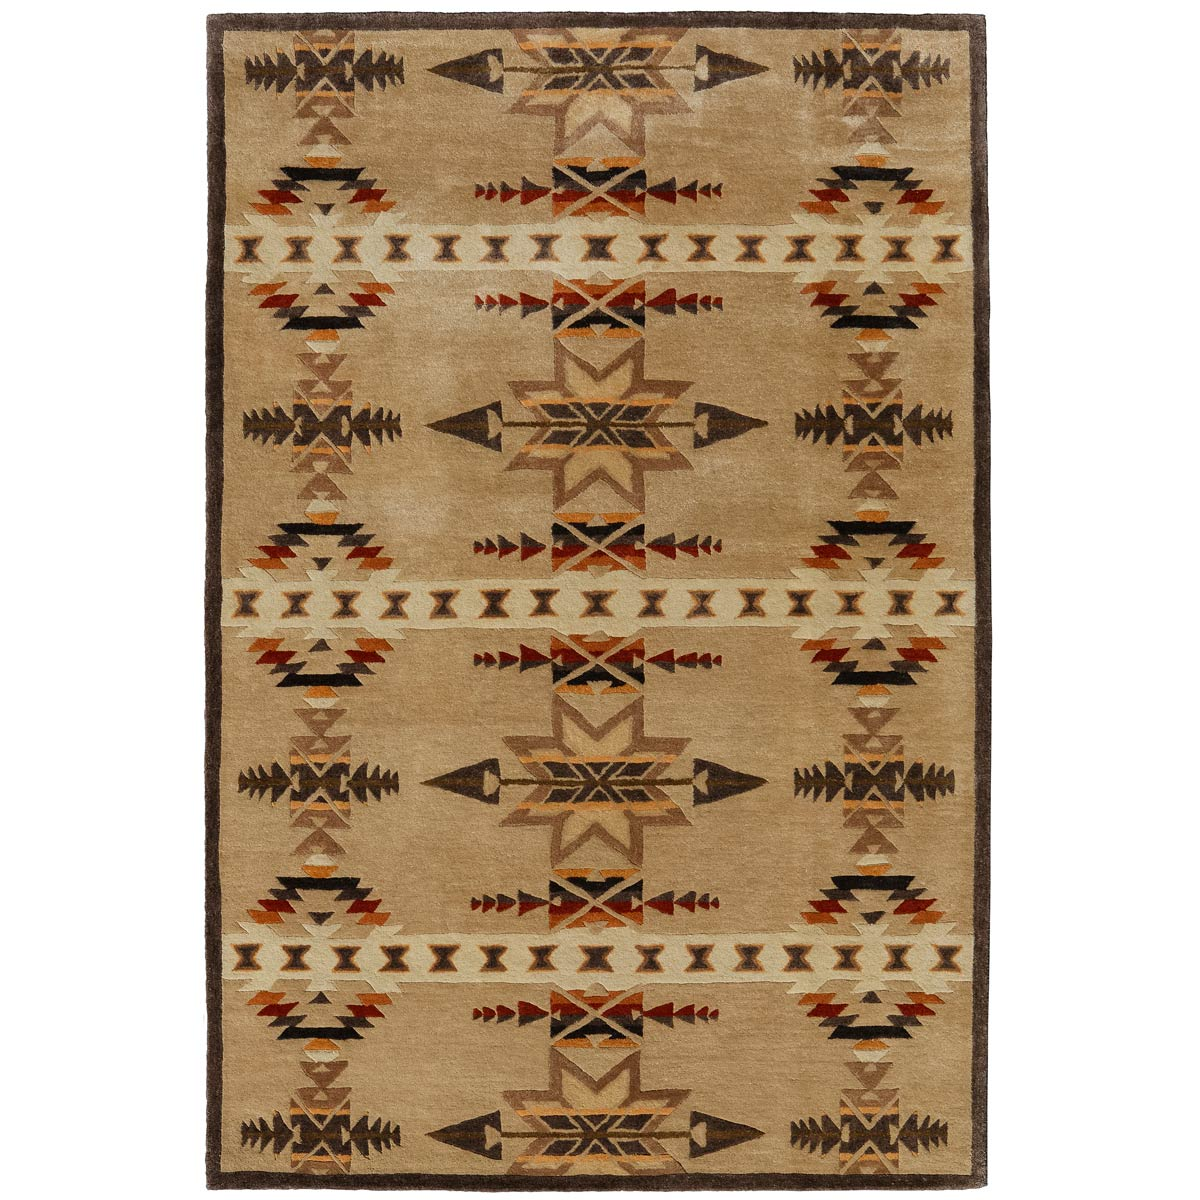 Gatekeeper Neutral Rug - 6 x 9